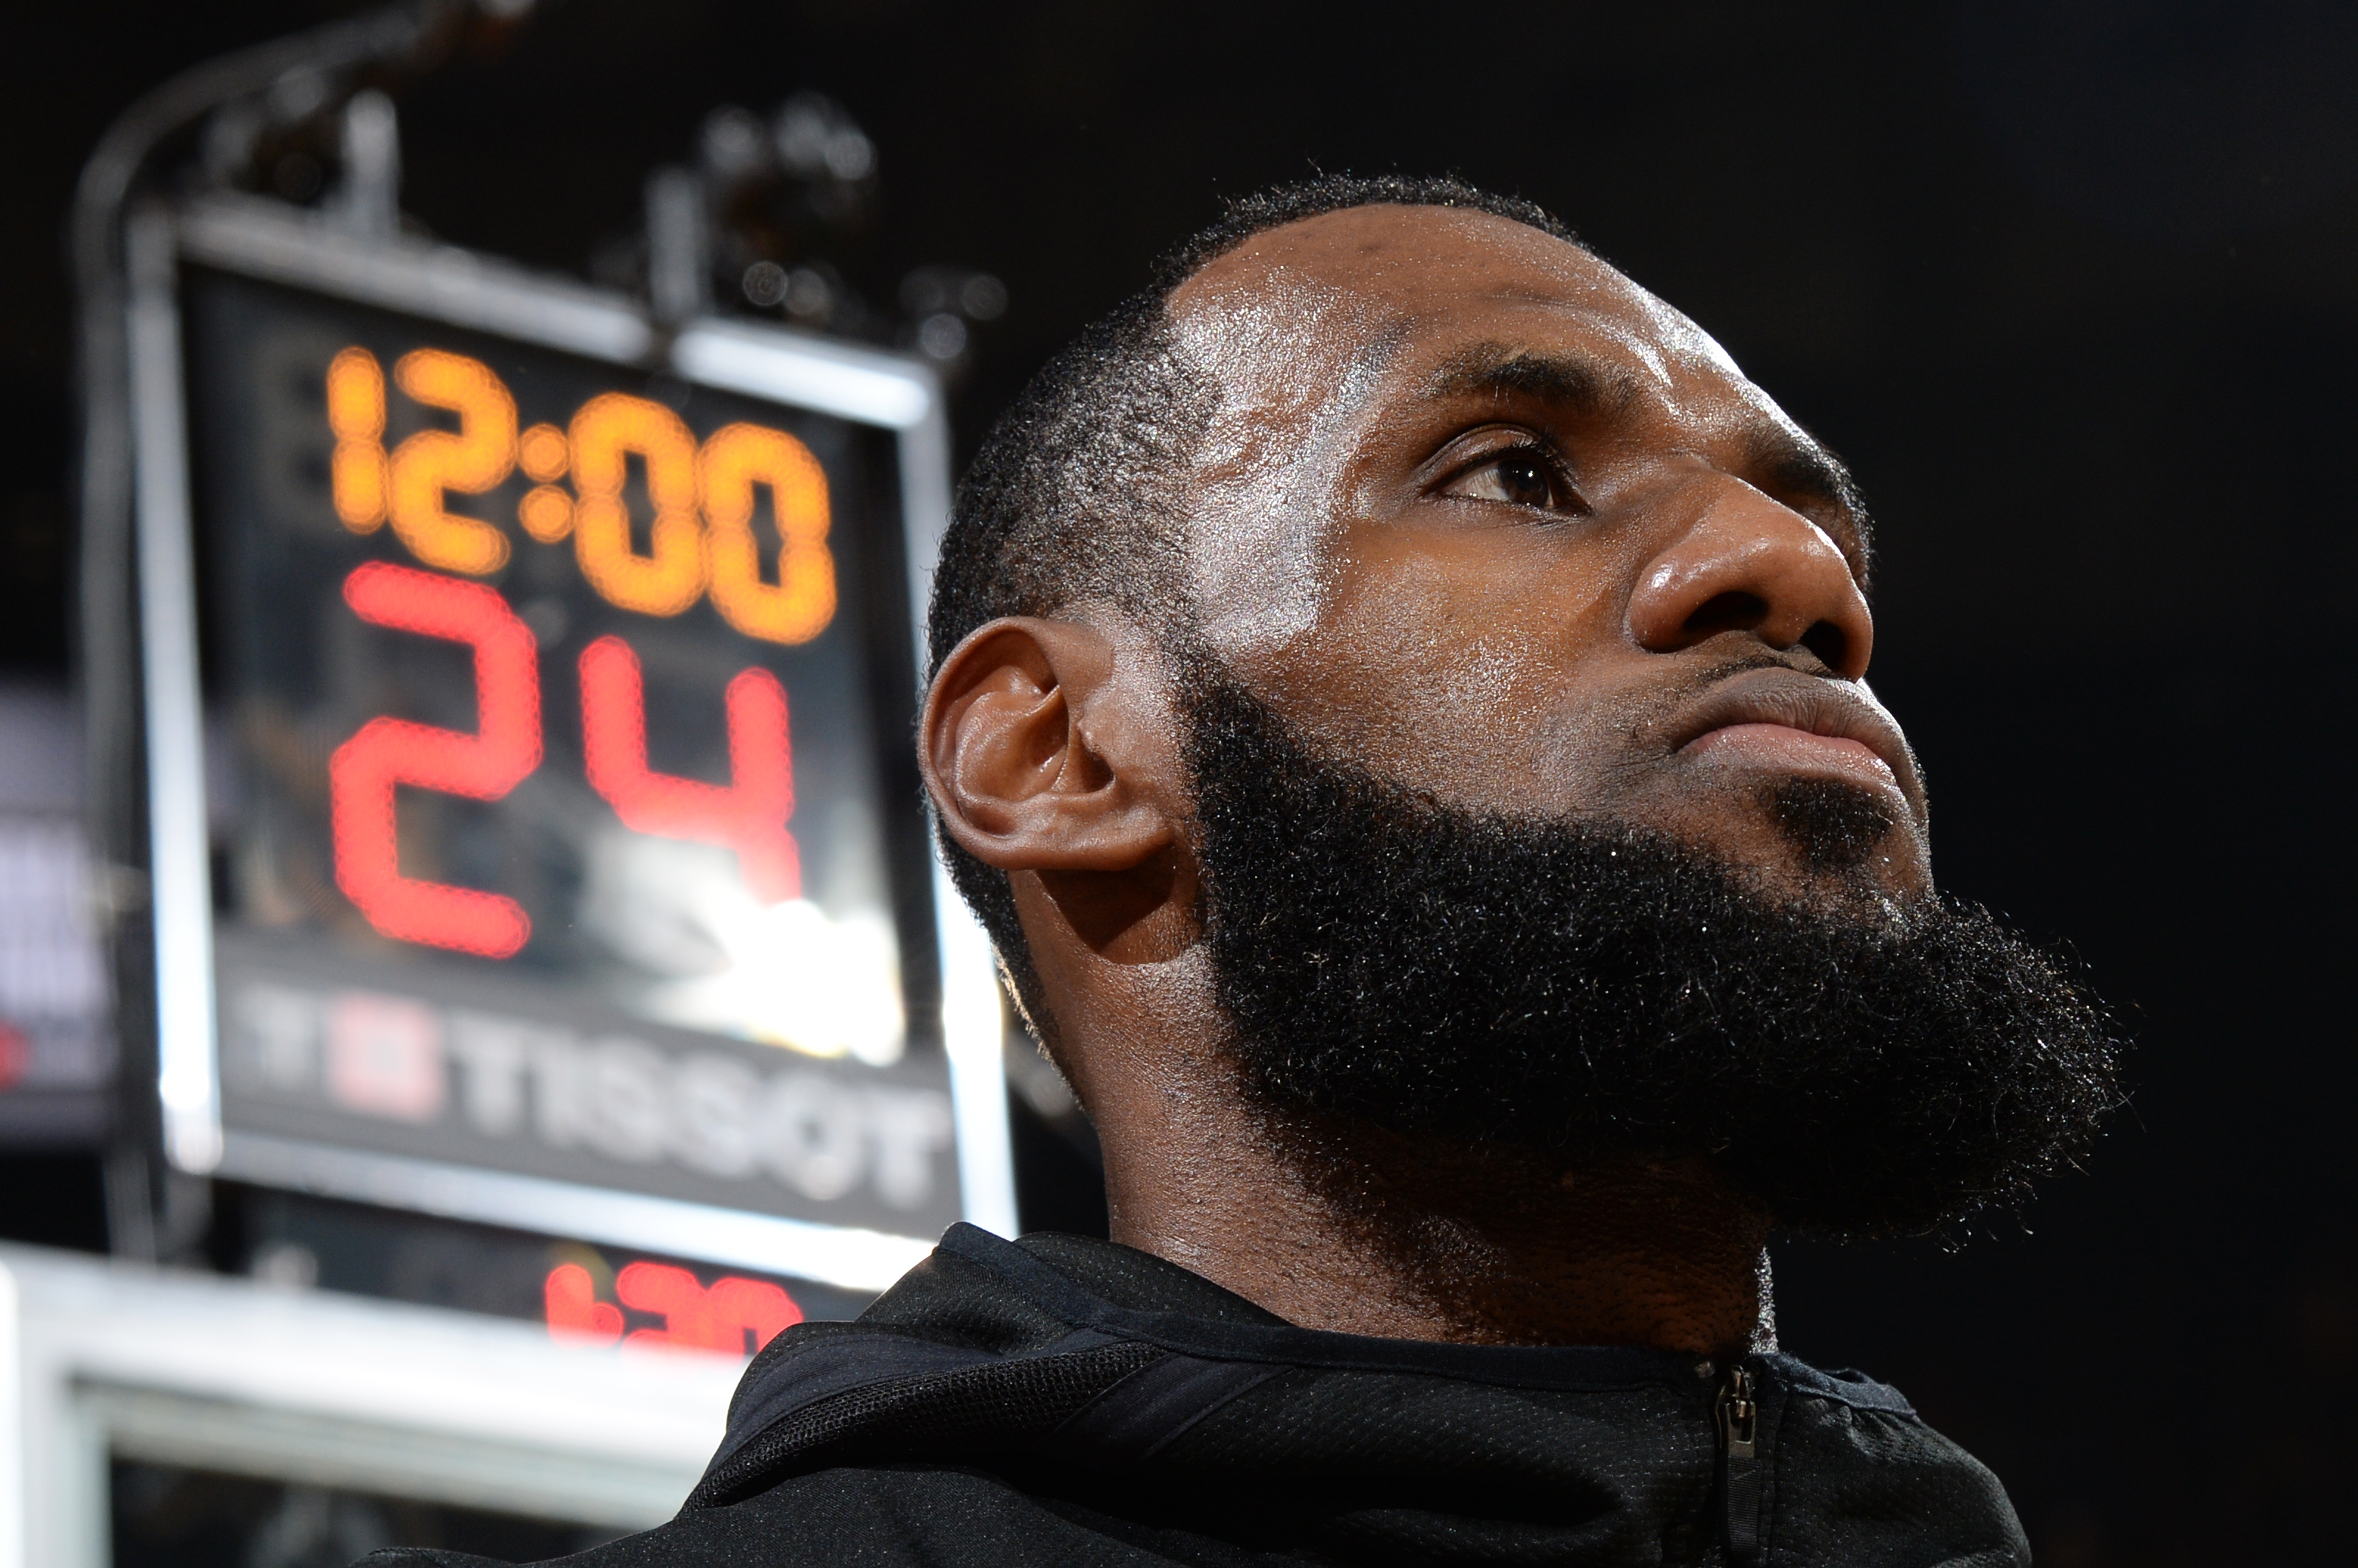 b8f1cb39b5b0 LeBron James has used professional basketball to turn himself into a  builder of schools